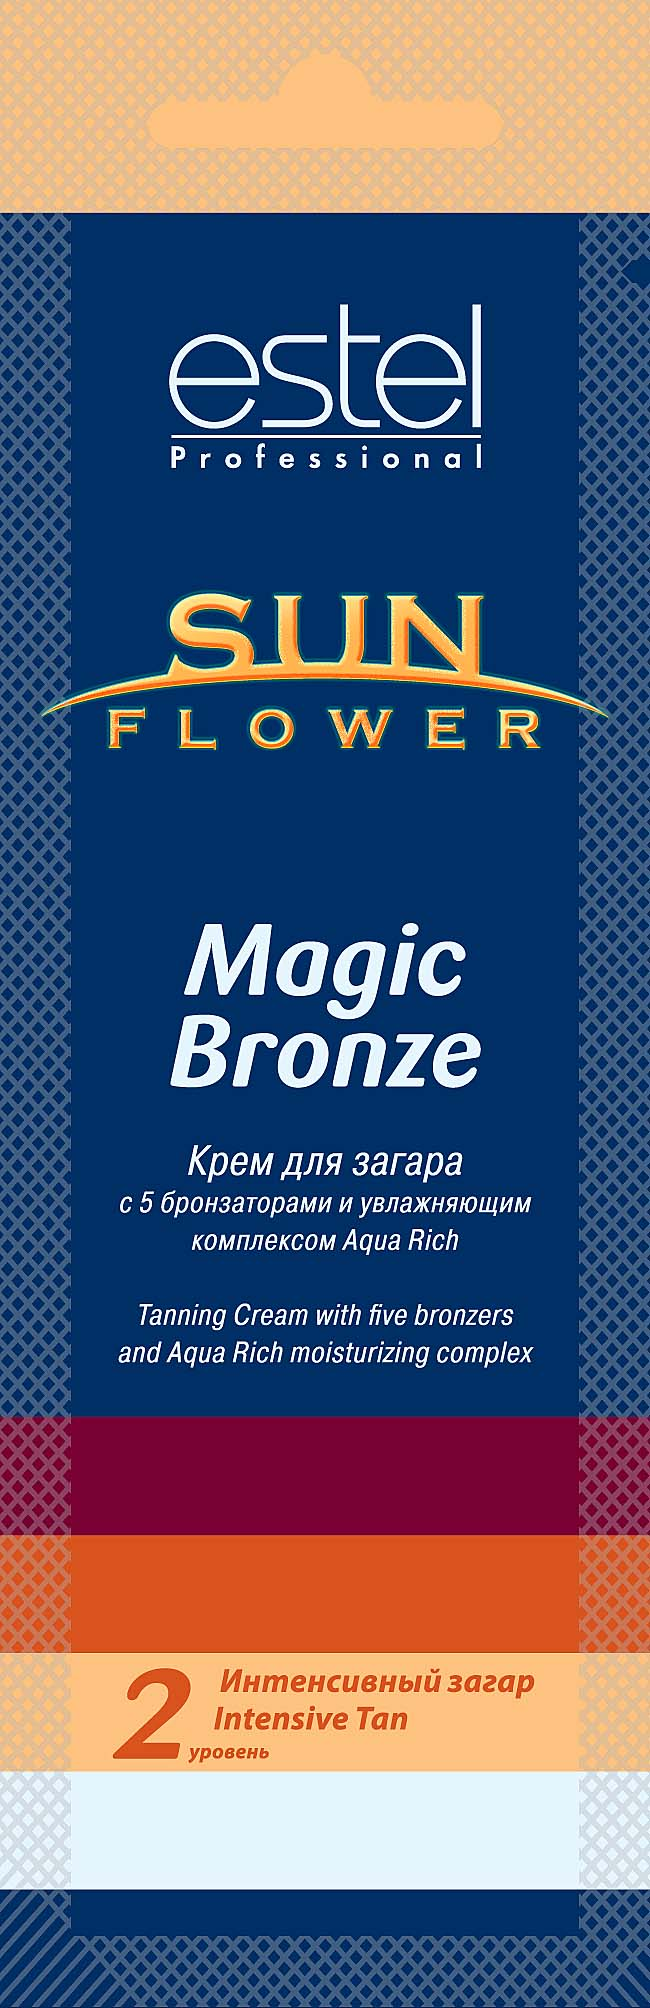 ESTEL PROFESSIONAL ���� ��� ������ / Sun Flower Magic Bronze 15��